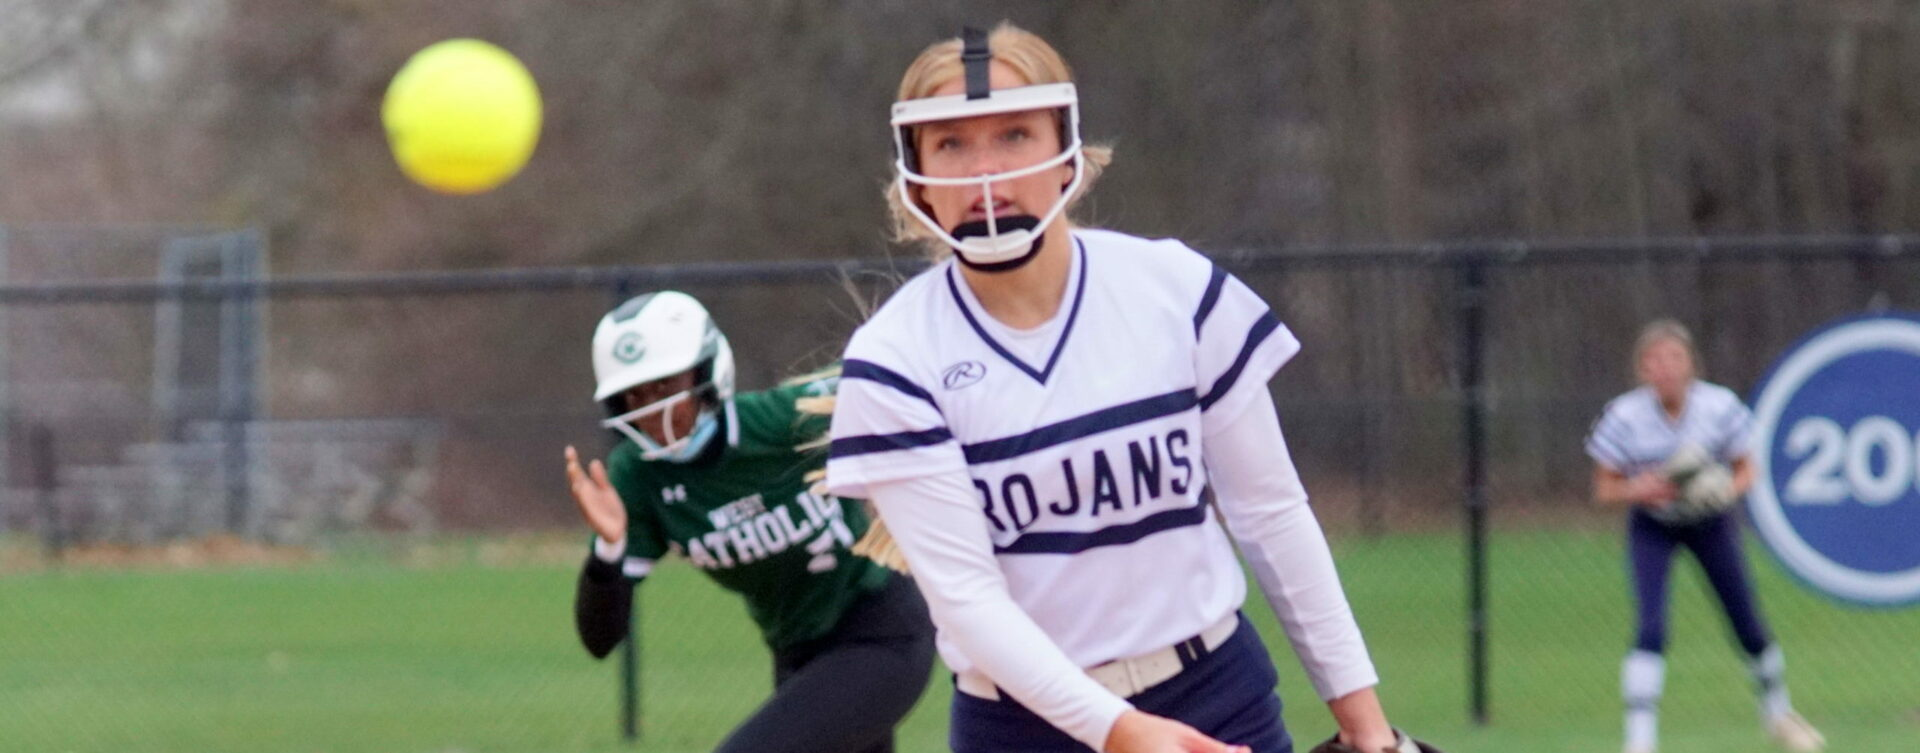 Fruitport softball team improves to 4-0 on the season with two come-from-behind victories over GR West Catholic